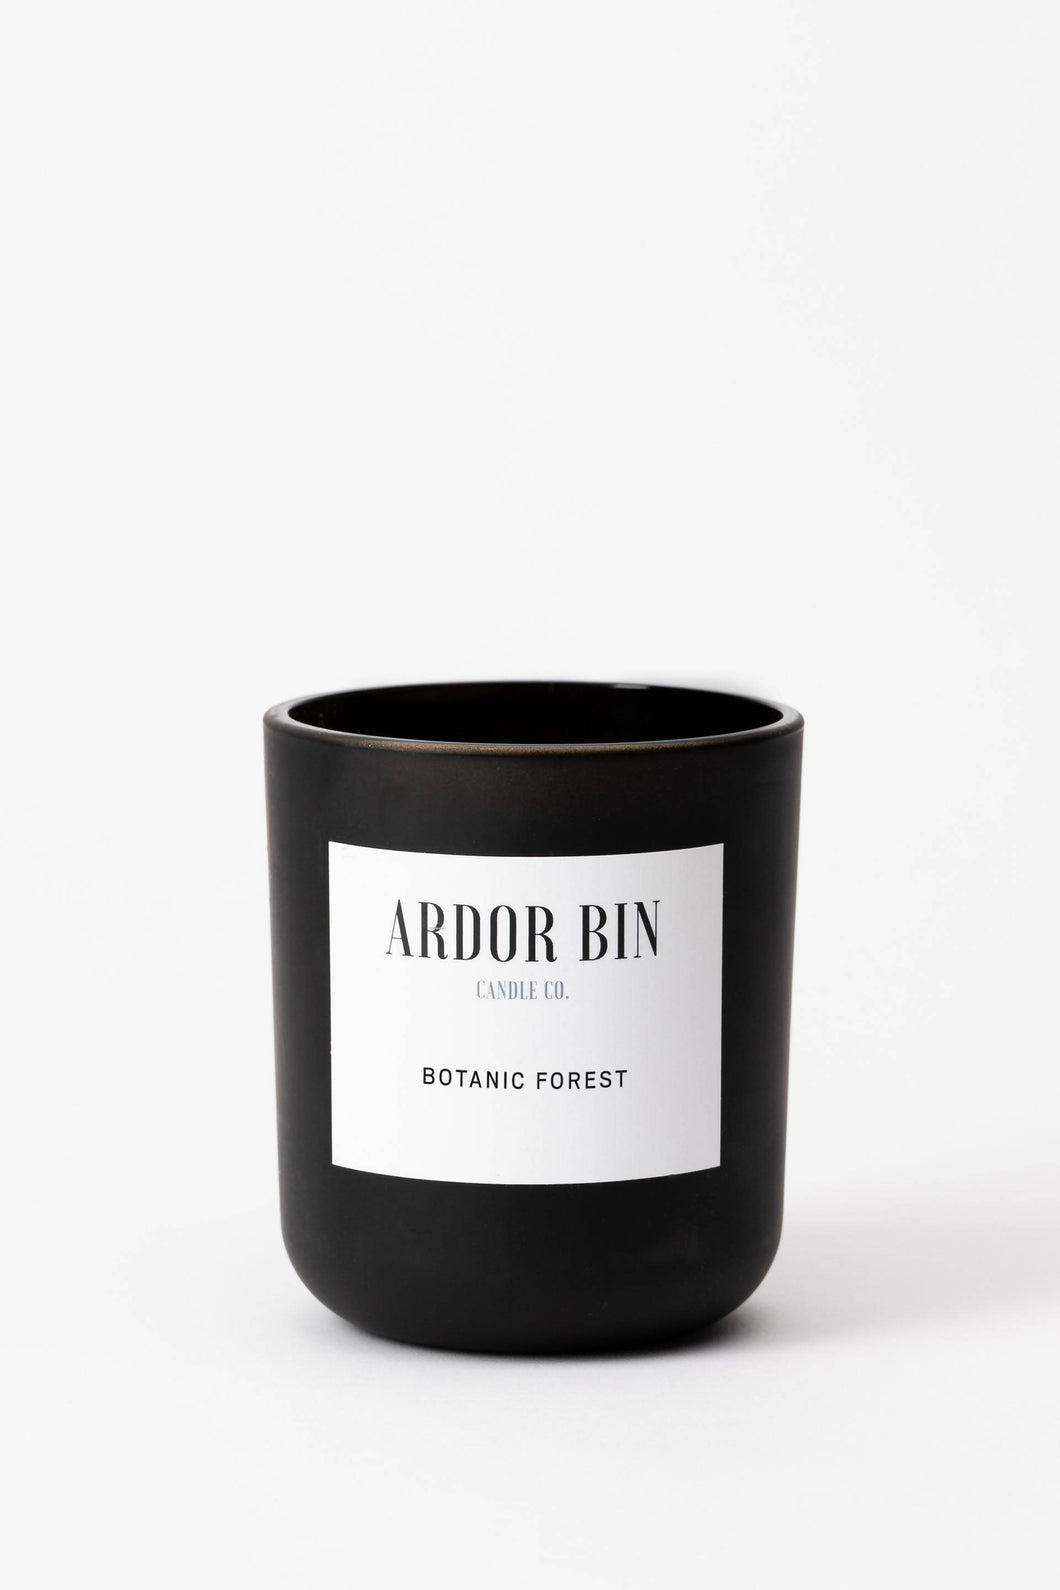 Ardor Bin Botanic Forest 12 oz. Wood Wick Scented Candle